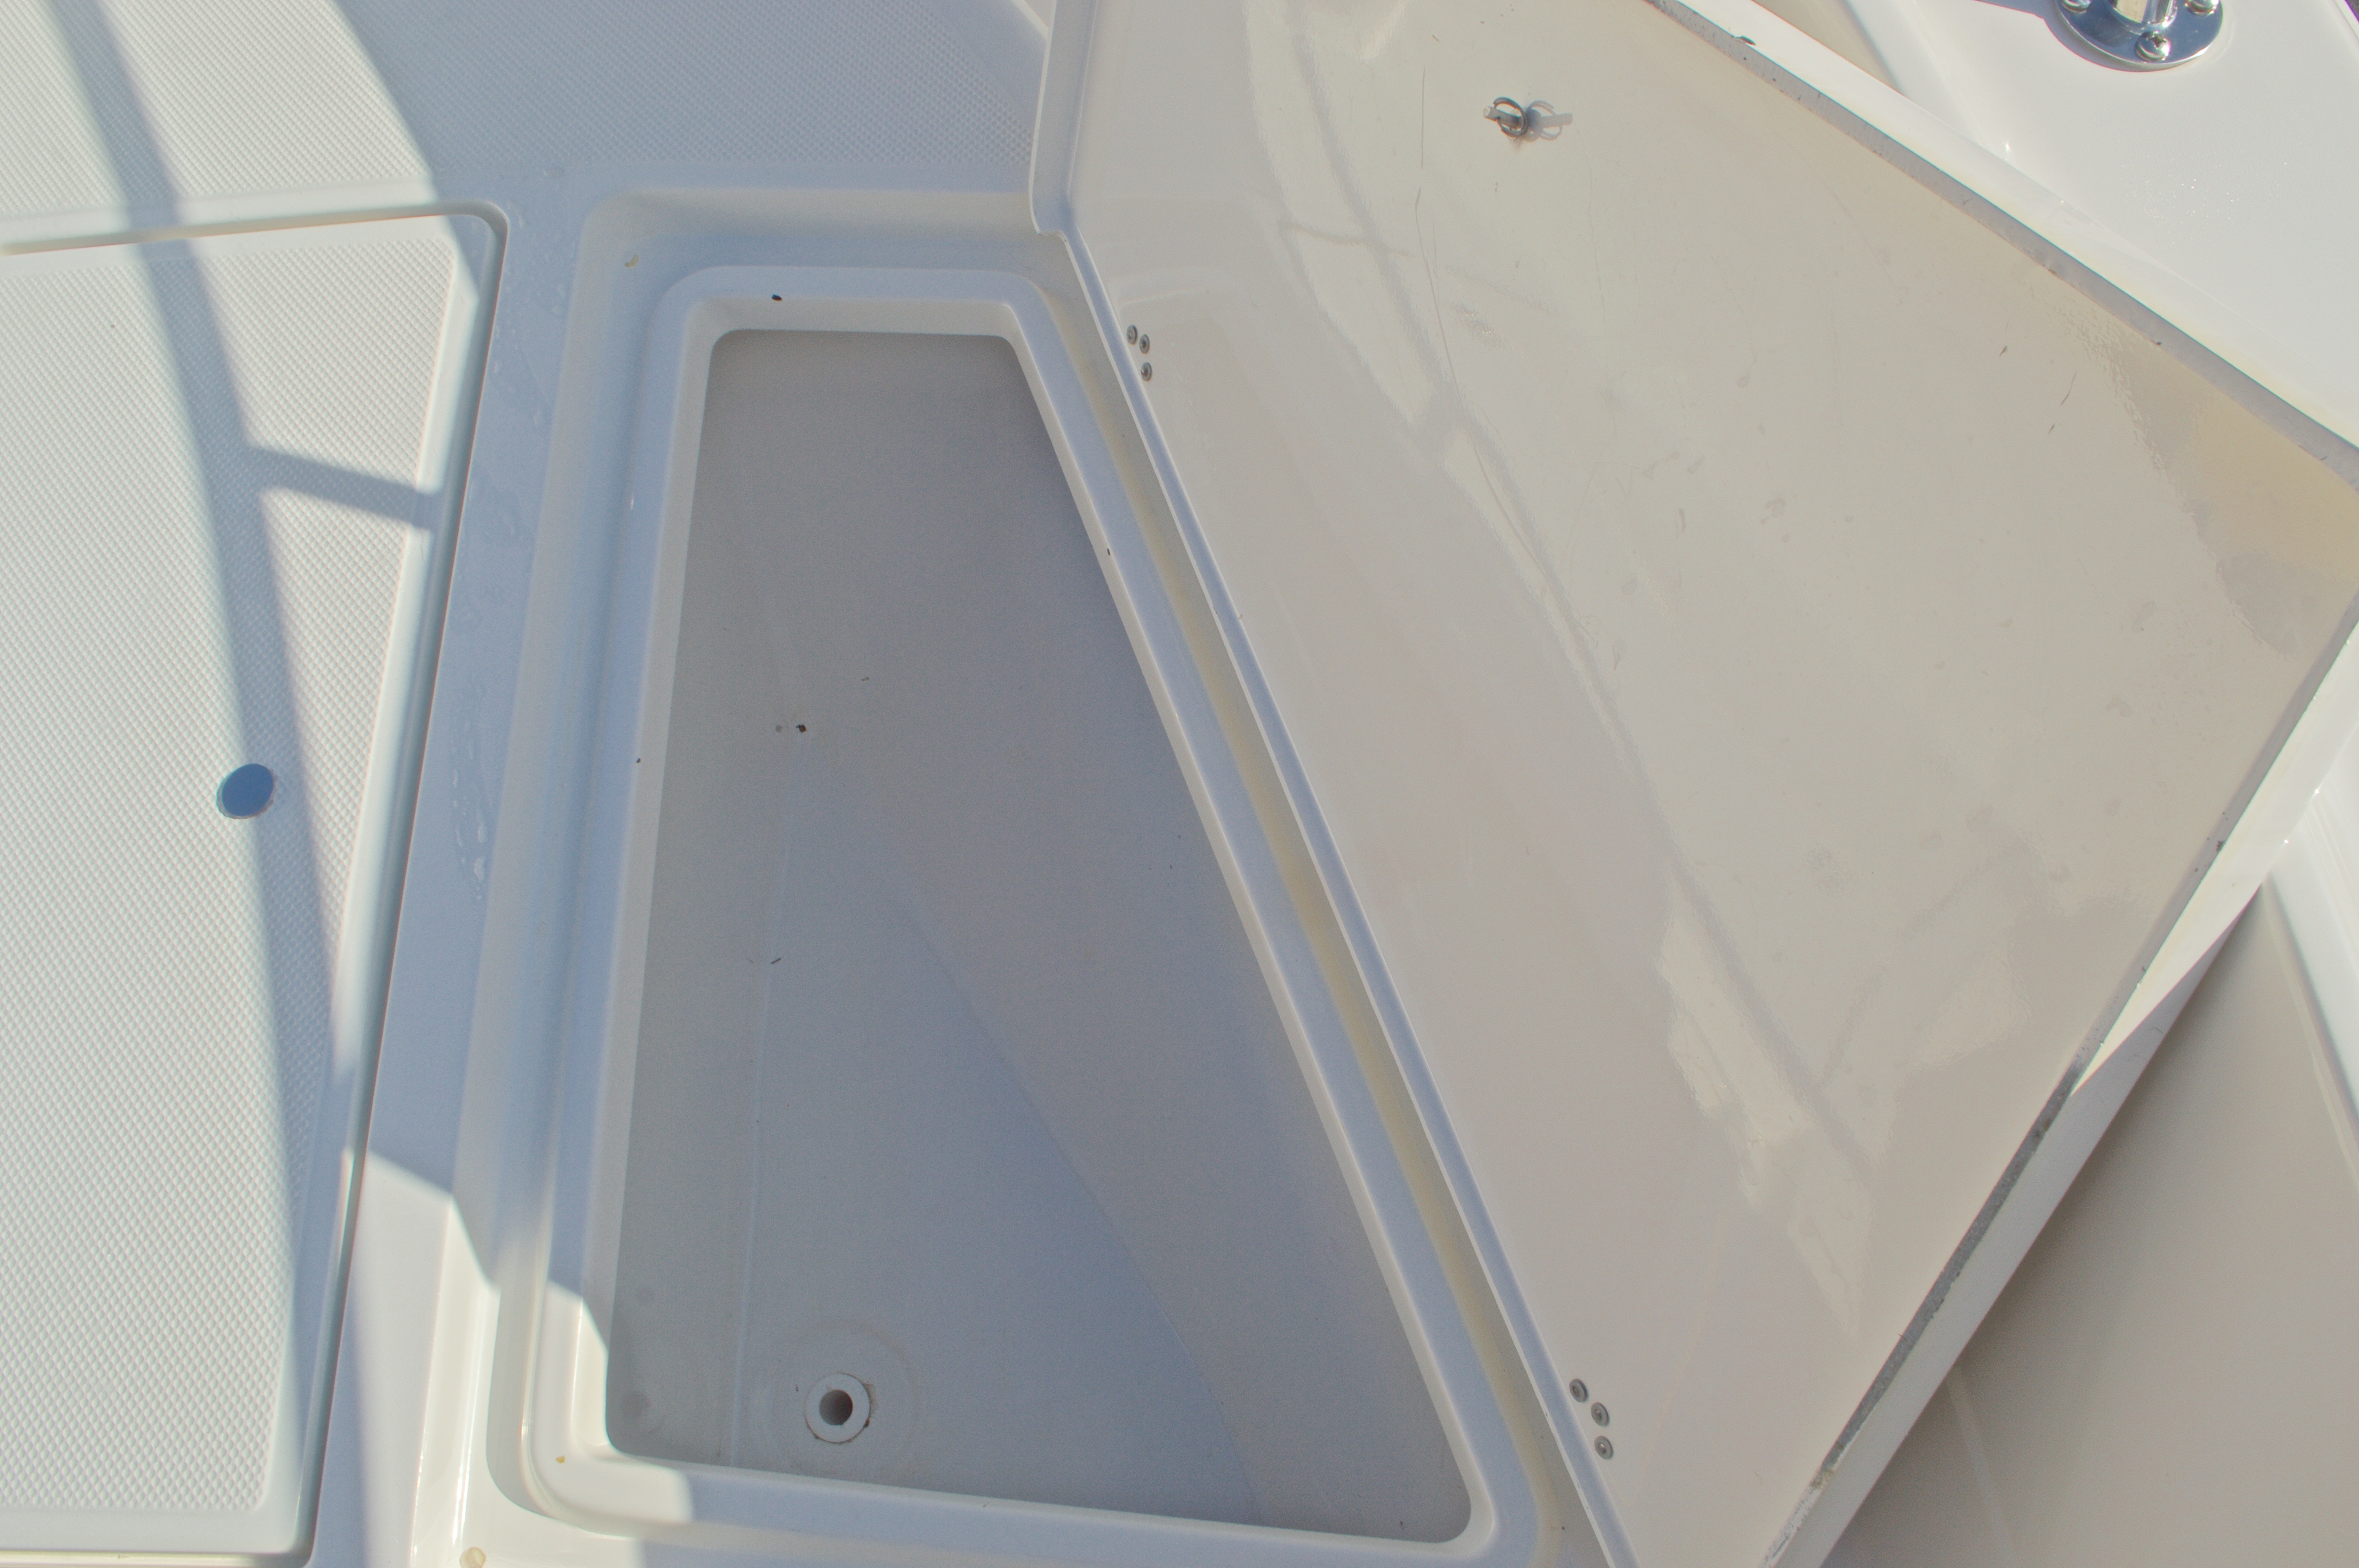 Thumbnail 47 for Used 2009 Key West 225 Center Console boat for sale in West Palm Beach, FL